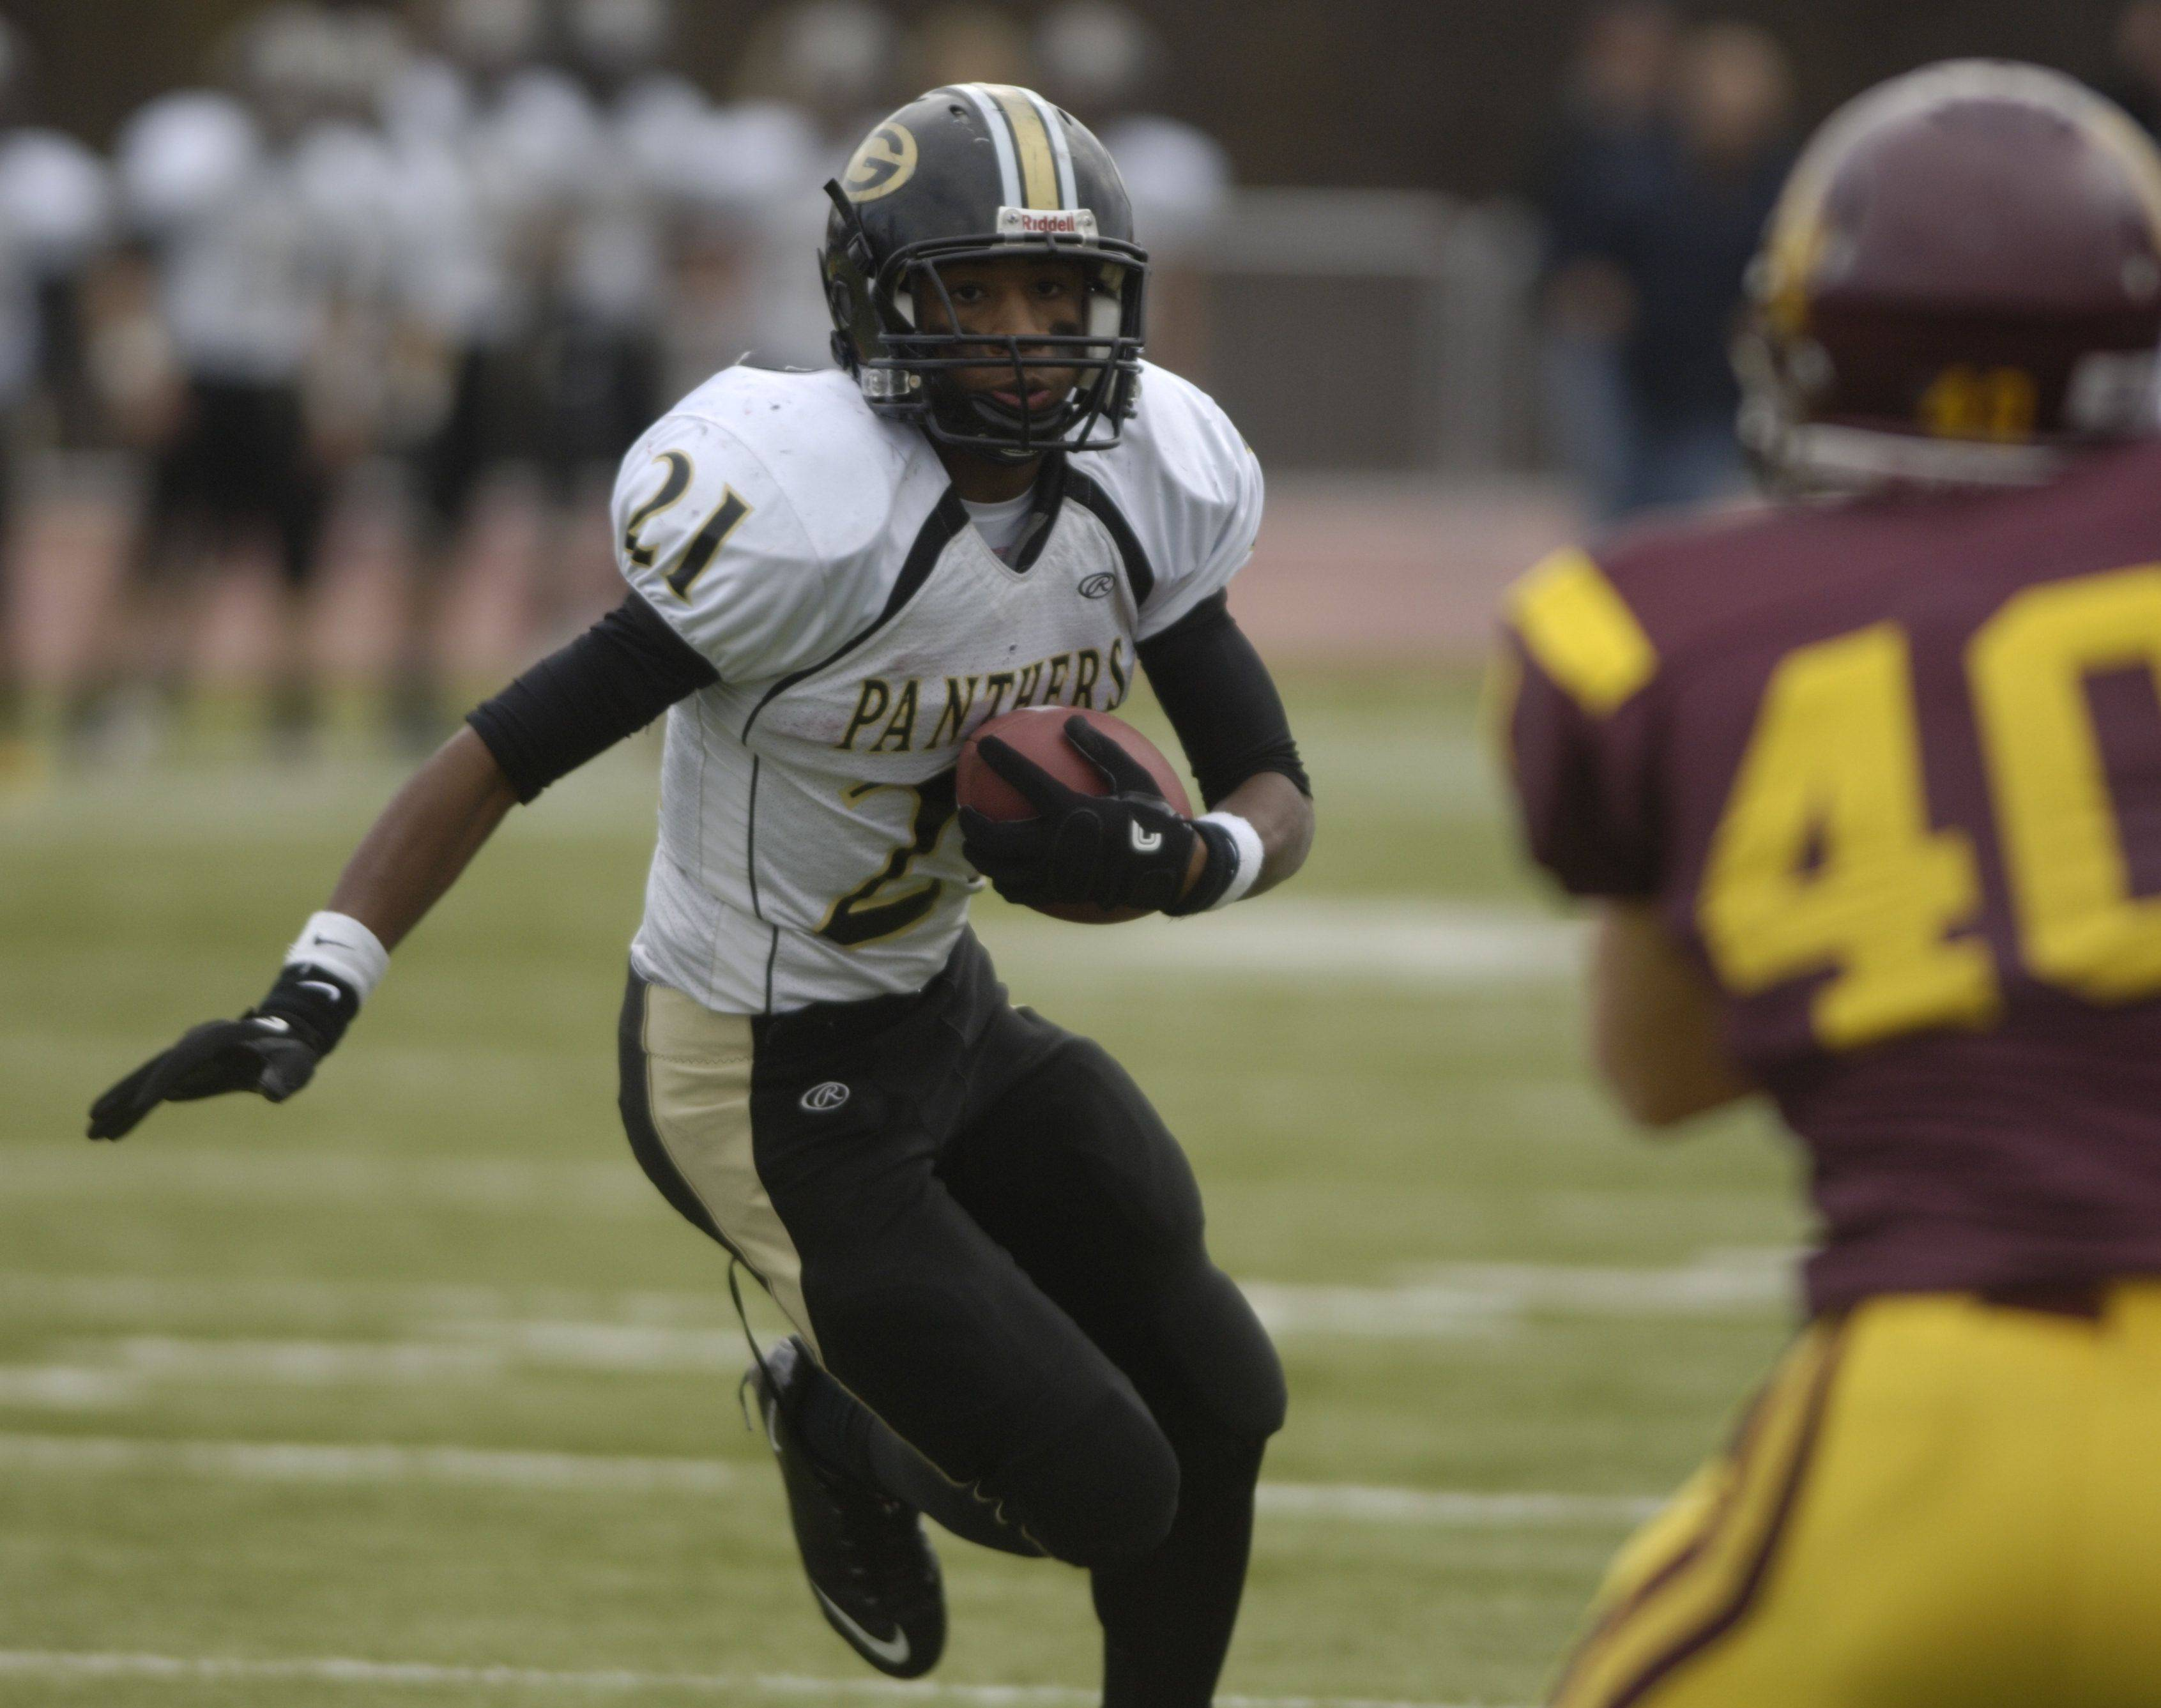 Playoffs - Round Four - Glenbard North at Loyola Academy in Class 8A football semifinals.